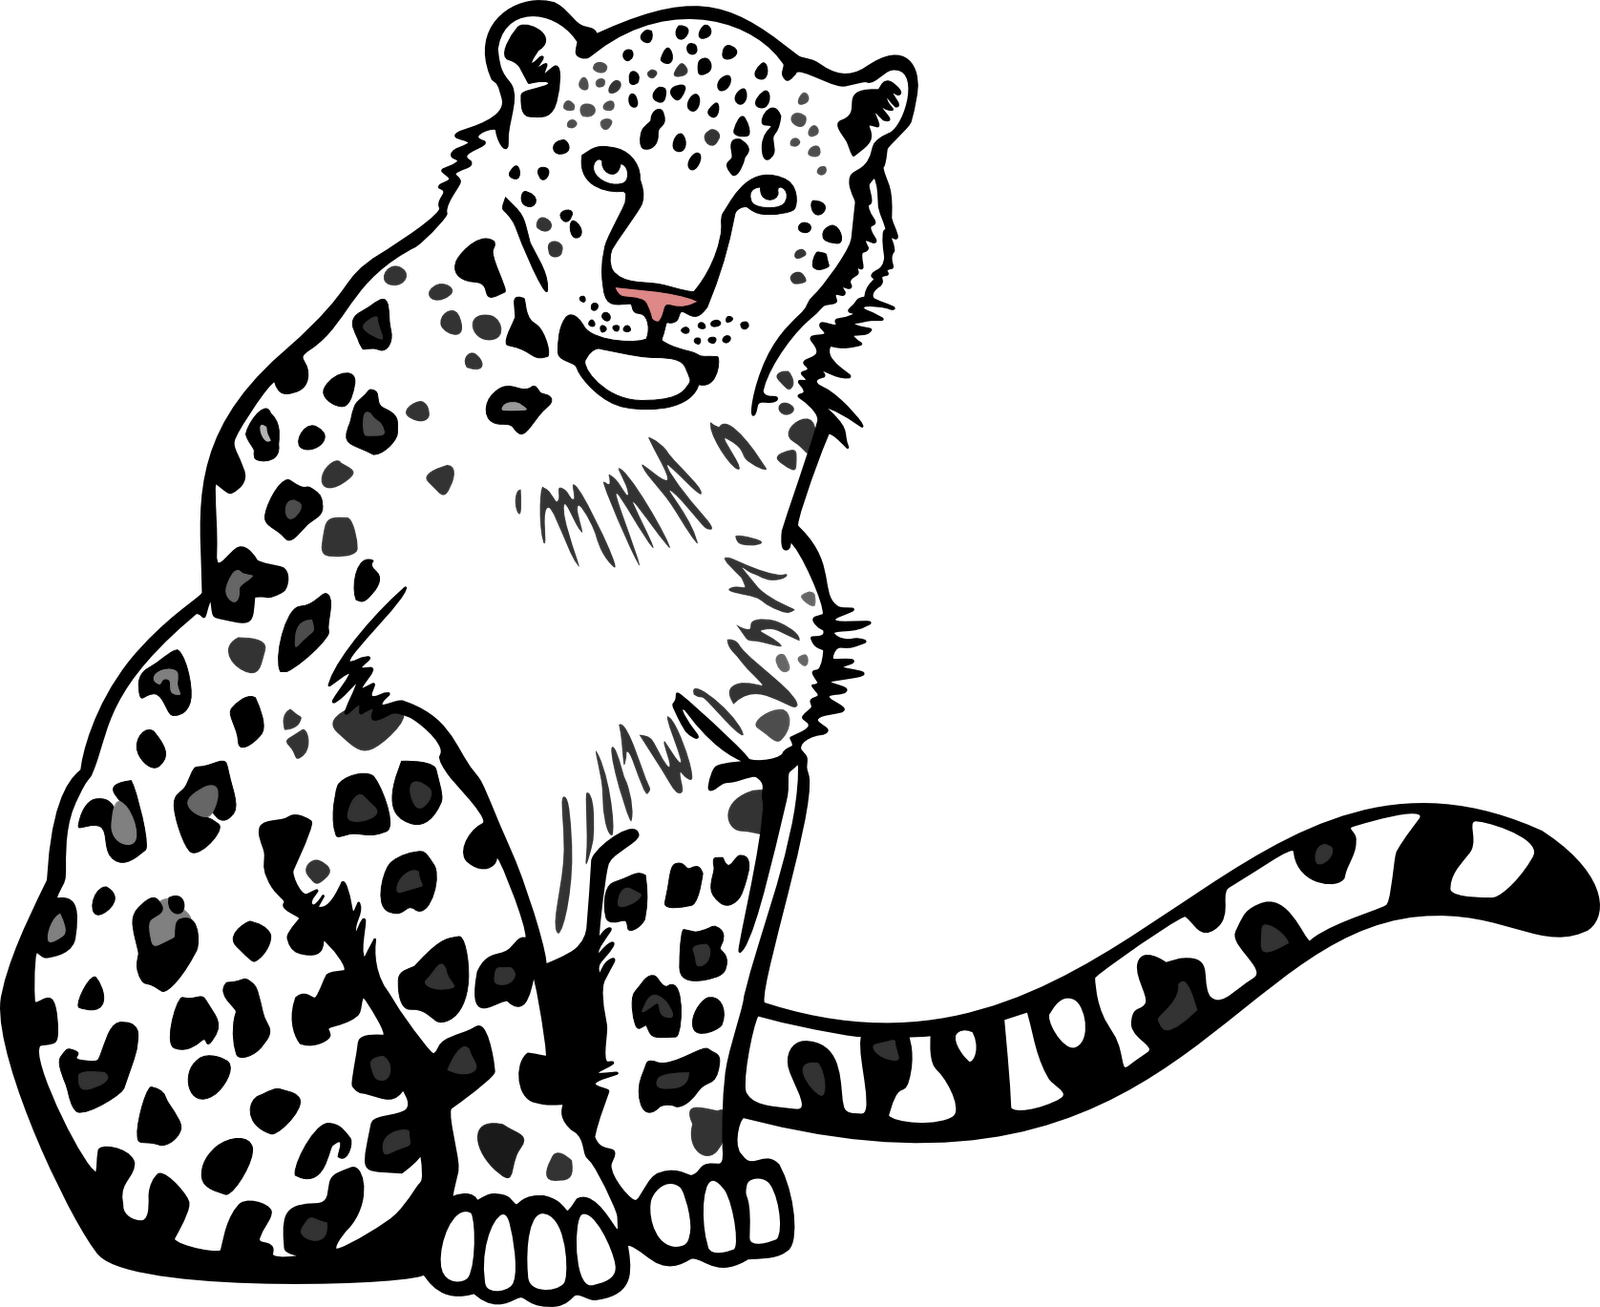 Download Hd Black And White Stock Collection Of Drawing Outline Snow Leopard Vector Png Transparent Png Image Nicepng Com